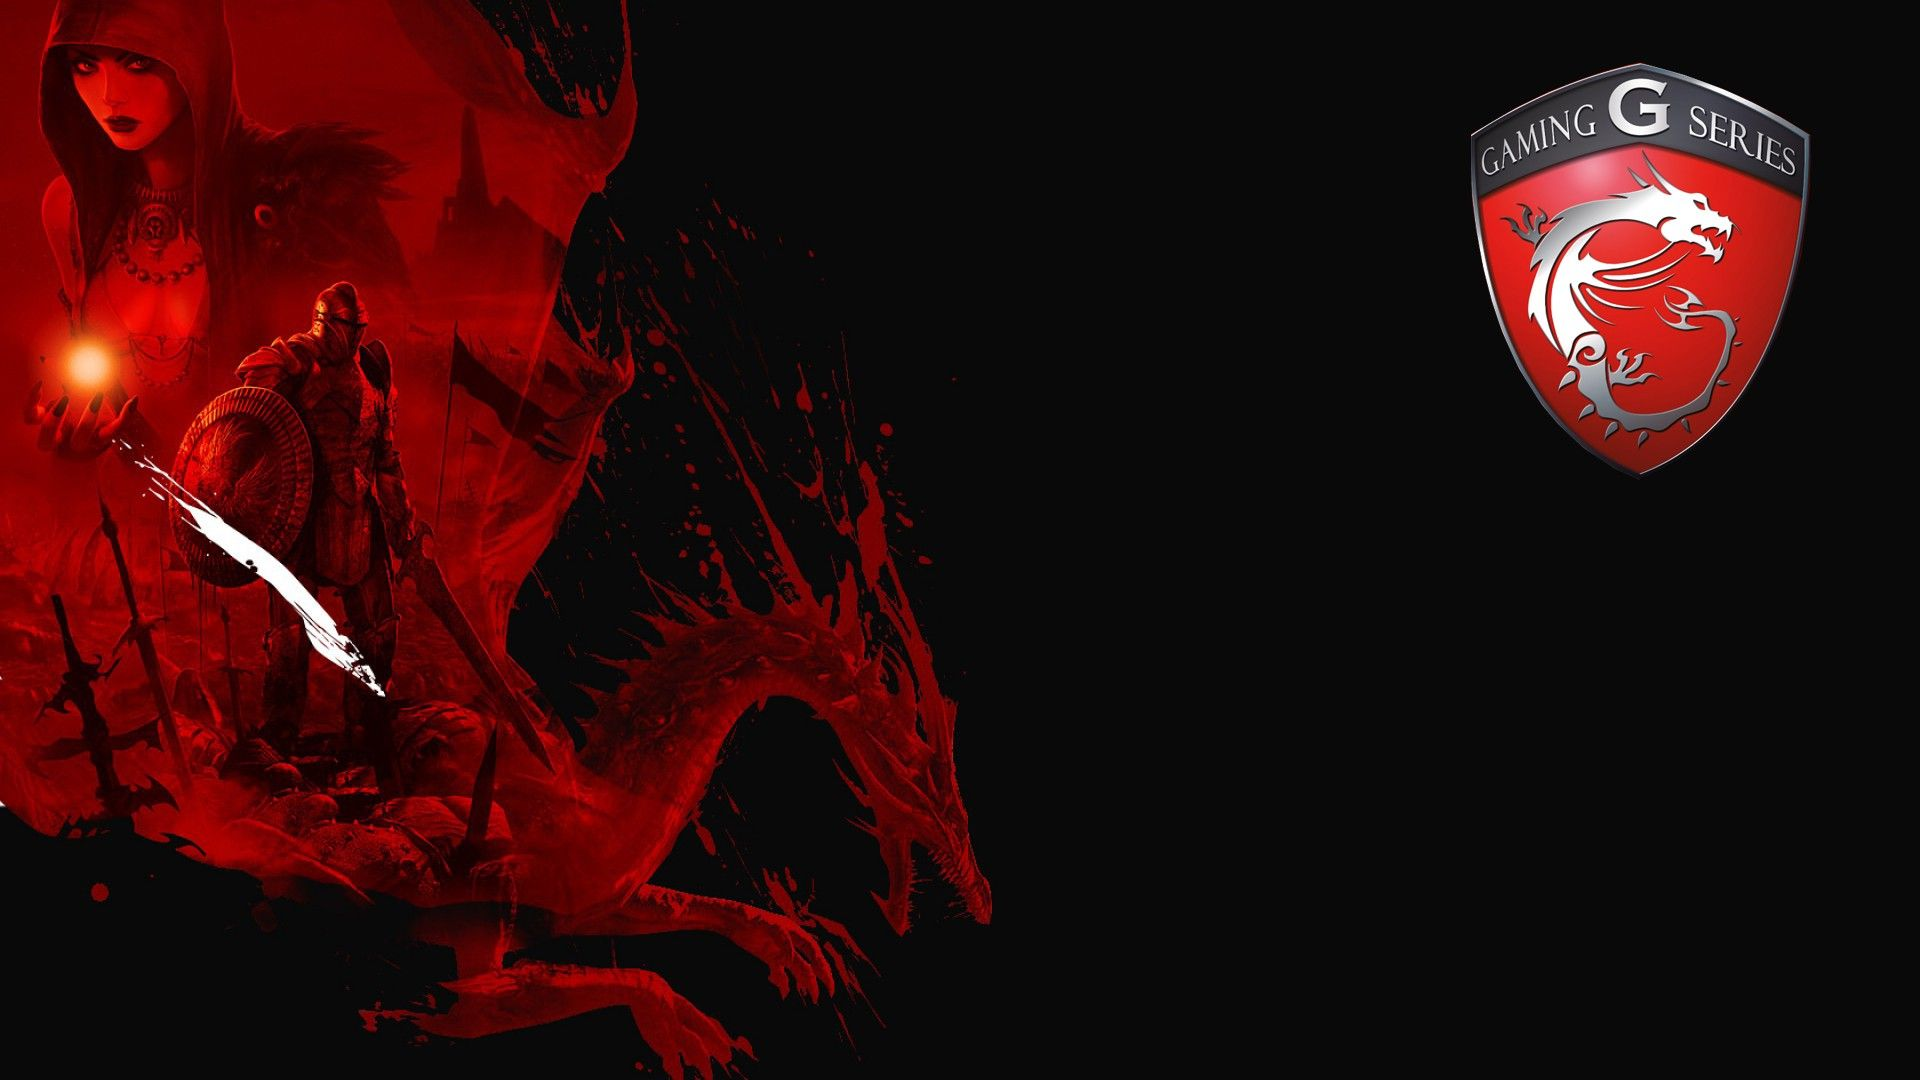 Msi Wallpaper Hd 1920x1080 Wallpapersafari Desktop Wallpaper